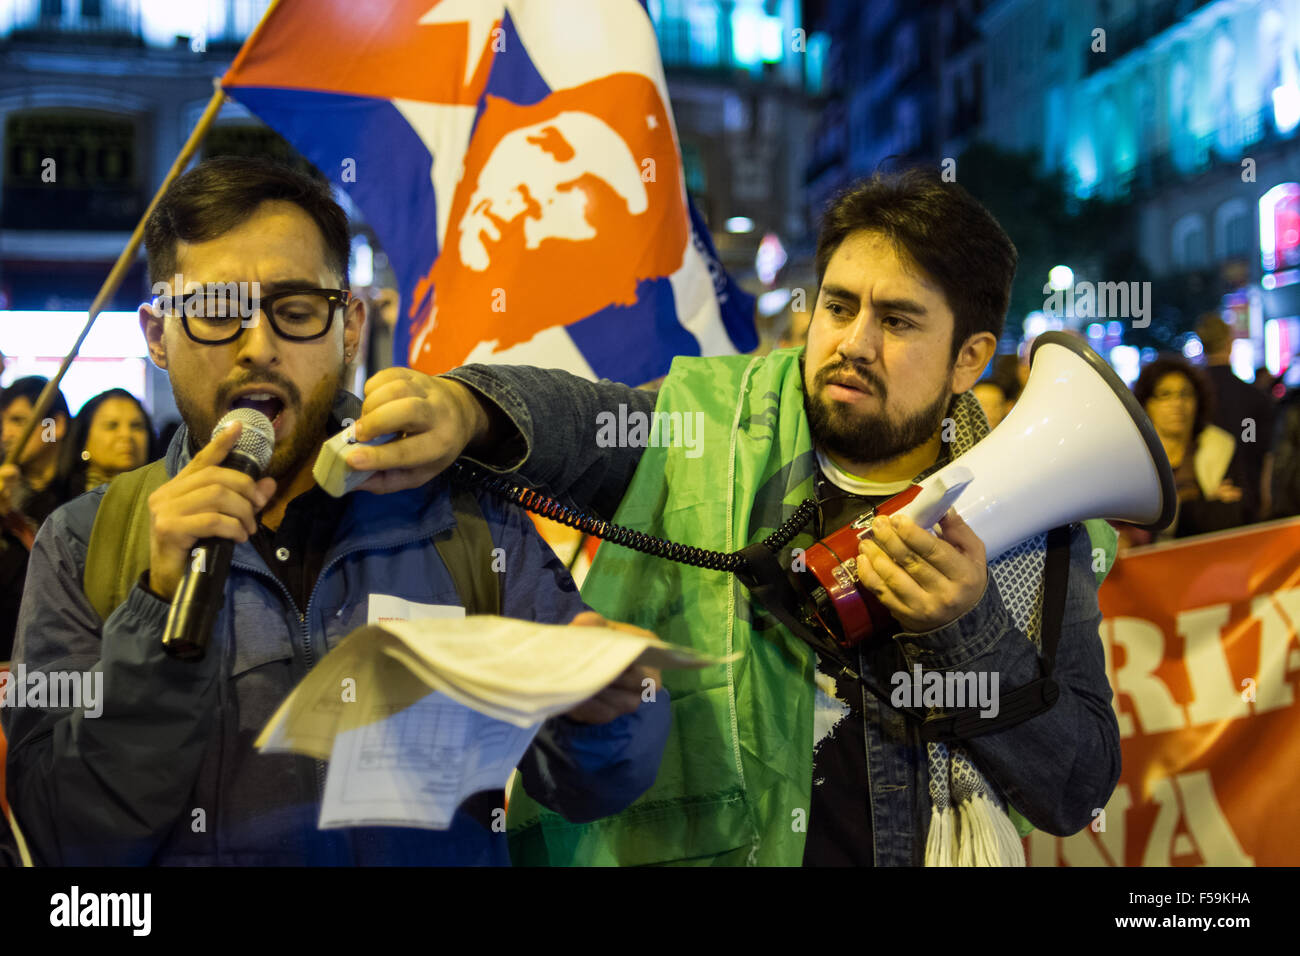 Madrid, Spain. 30th Oct, 2015. An activist speaks to the crowd during a demonstration in Madrid against imperialism - Stock Image